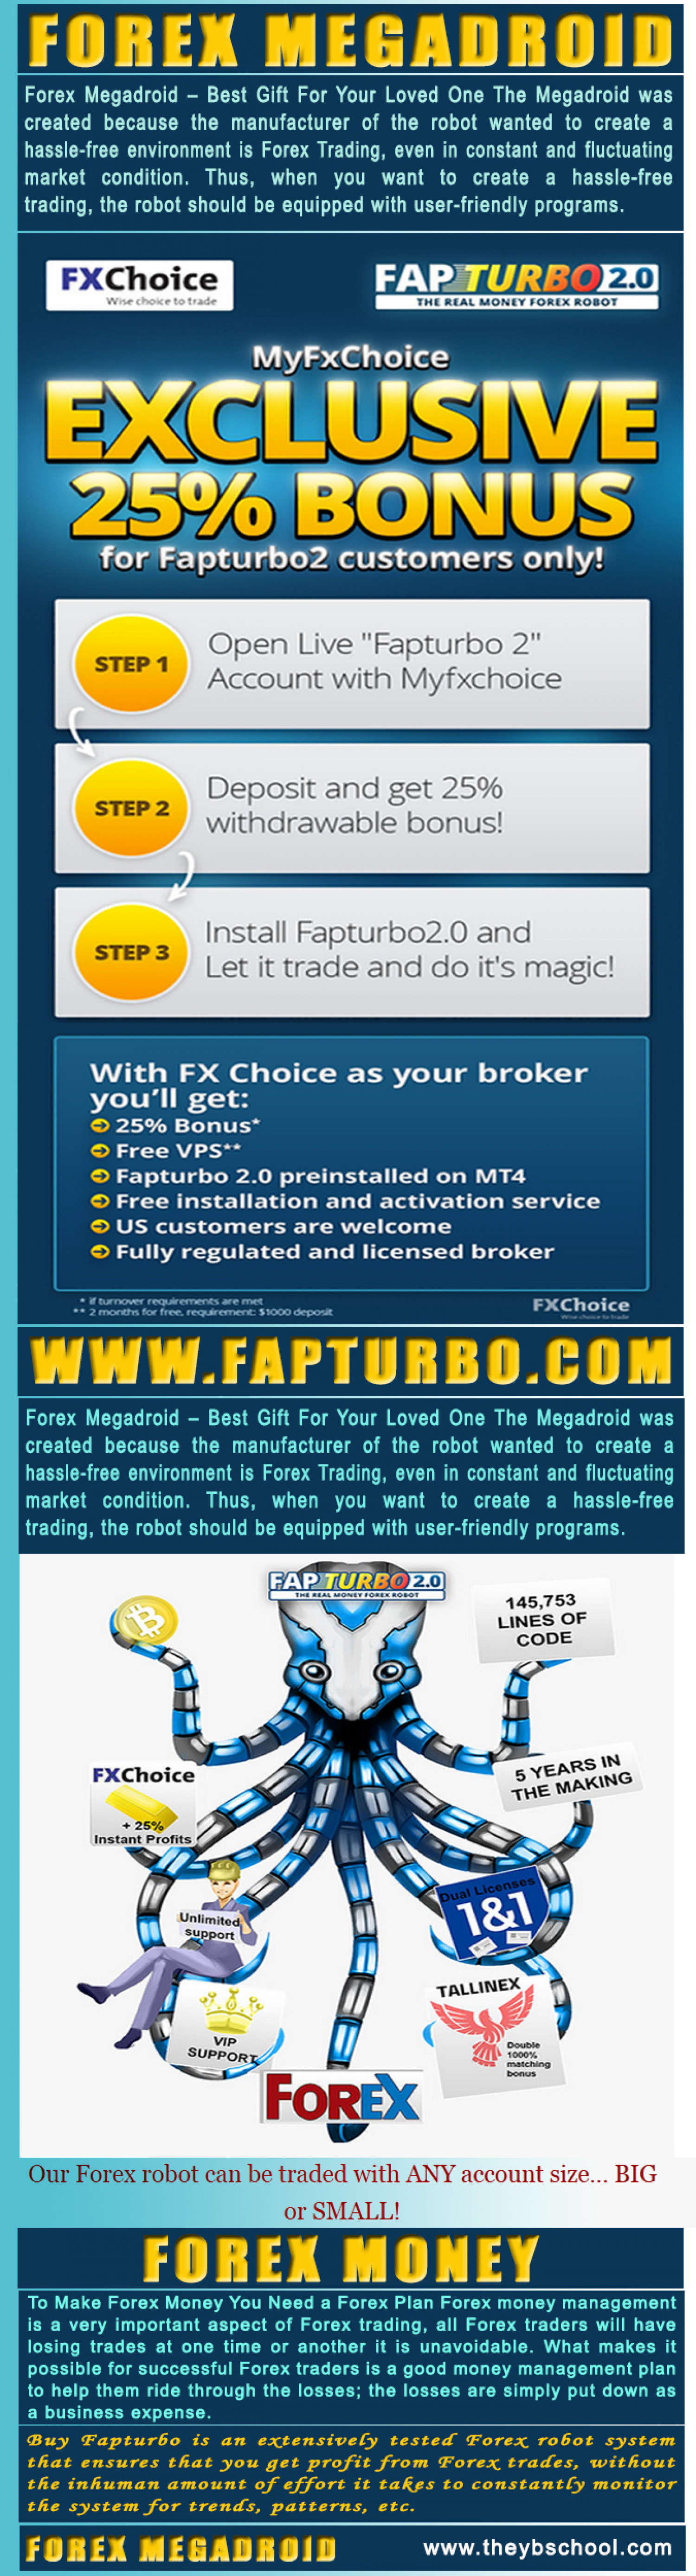 Forex Megadroid Infographic